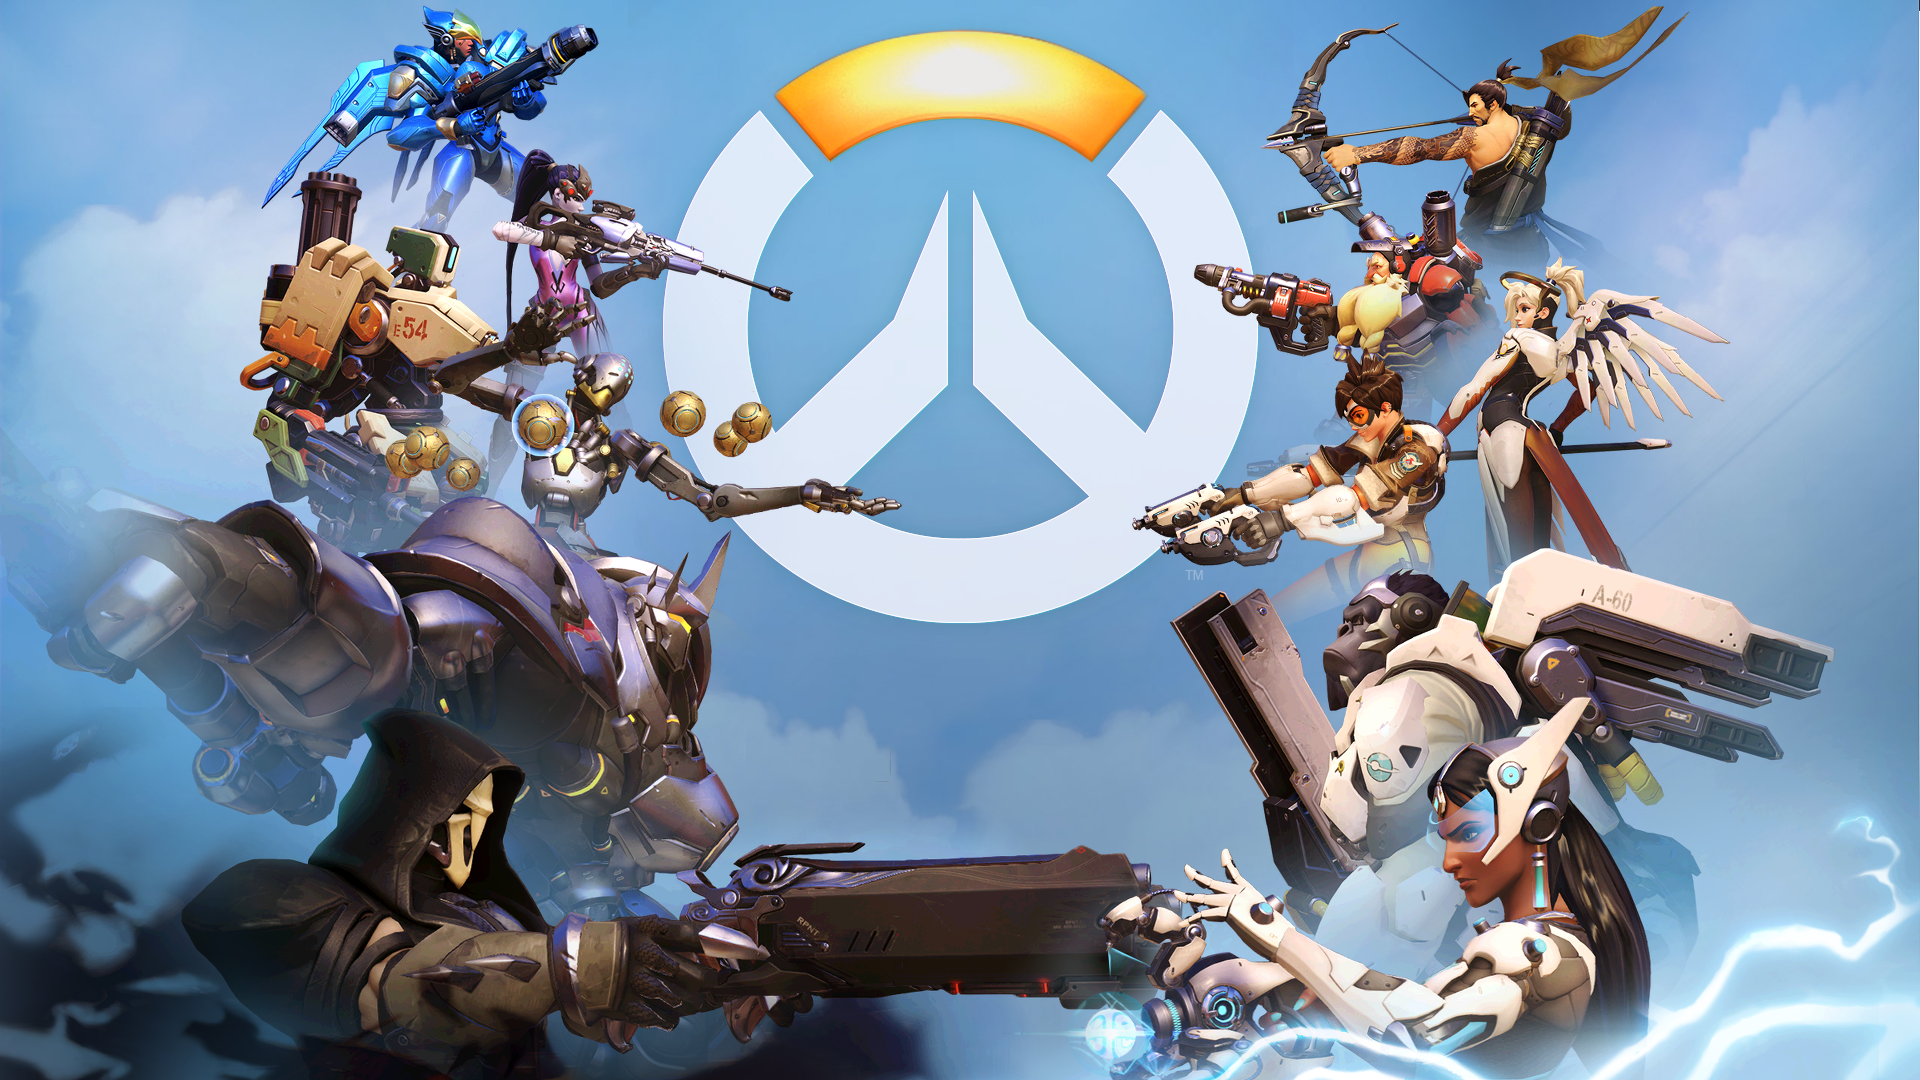 Overwatch Arrives May 24 on PC, PS4 and Xbox One